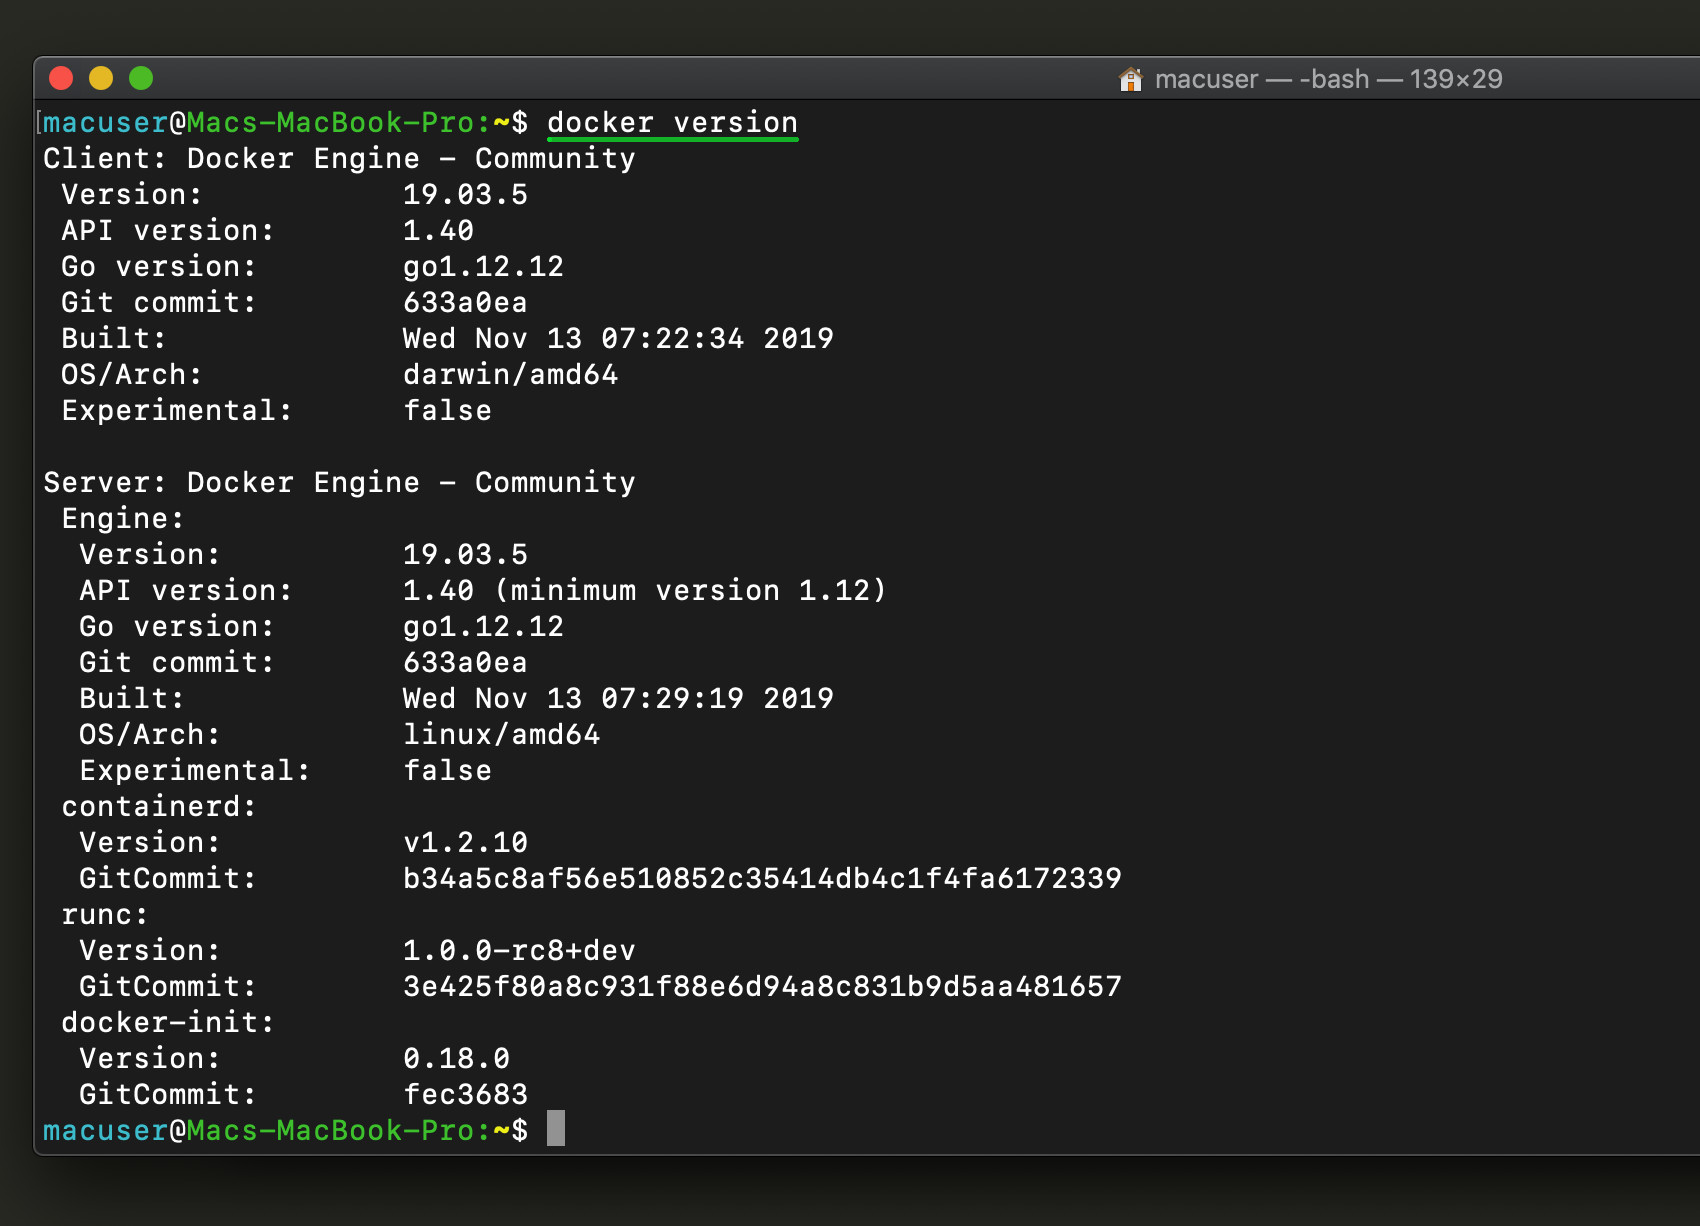 Screenshot of the Docker version for Redis and Docker